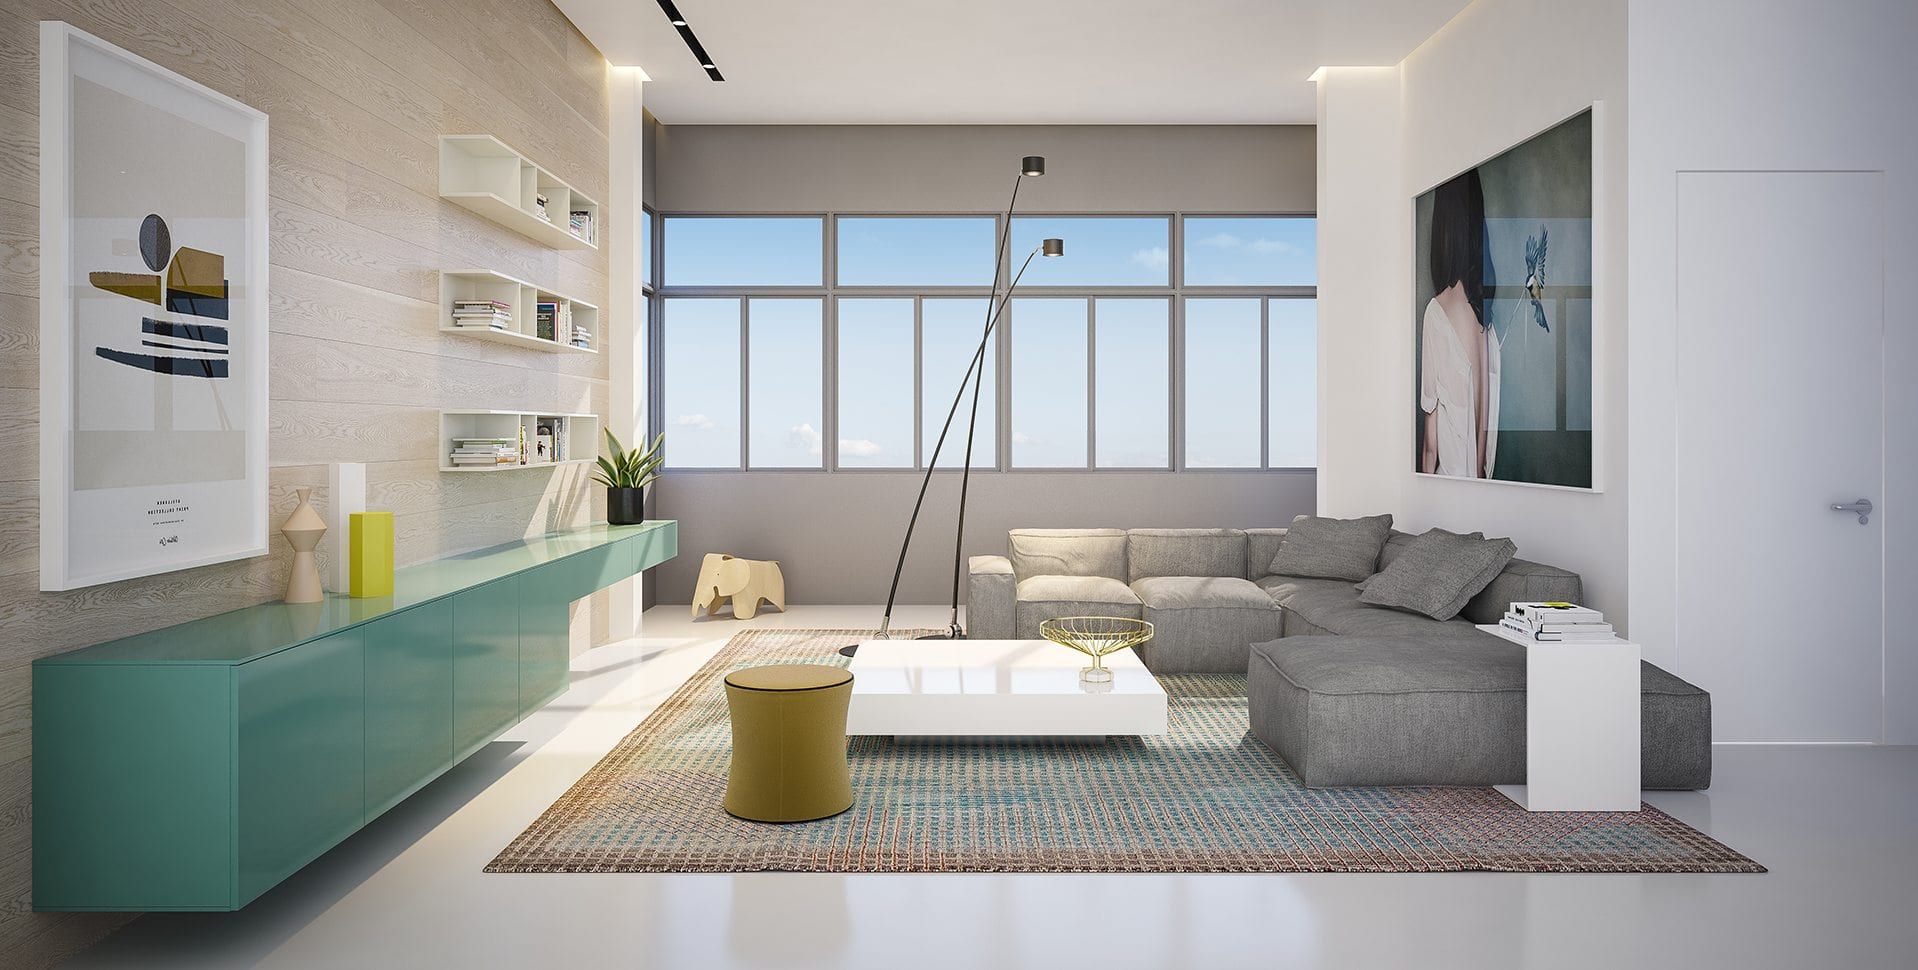 Maayan-Golan_Architectural-Visualization_ apartment-living-room_interior-visualization_ Dizengoff-189-tel-aviv_02